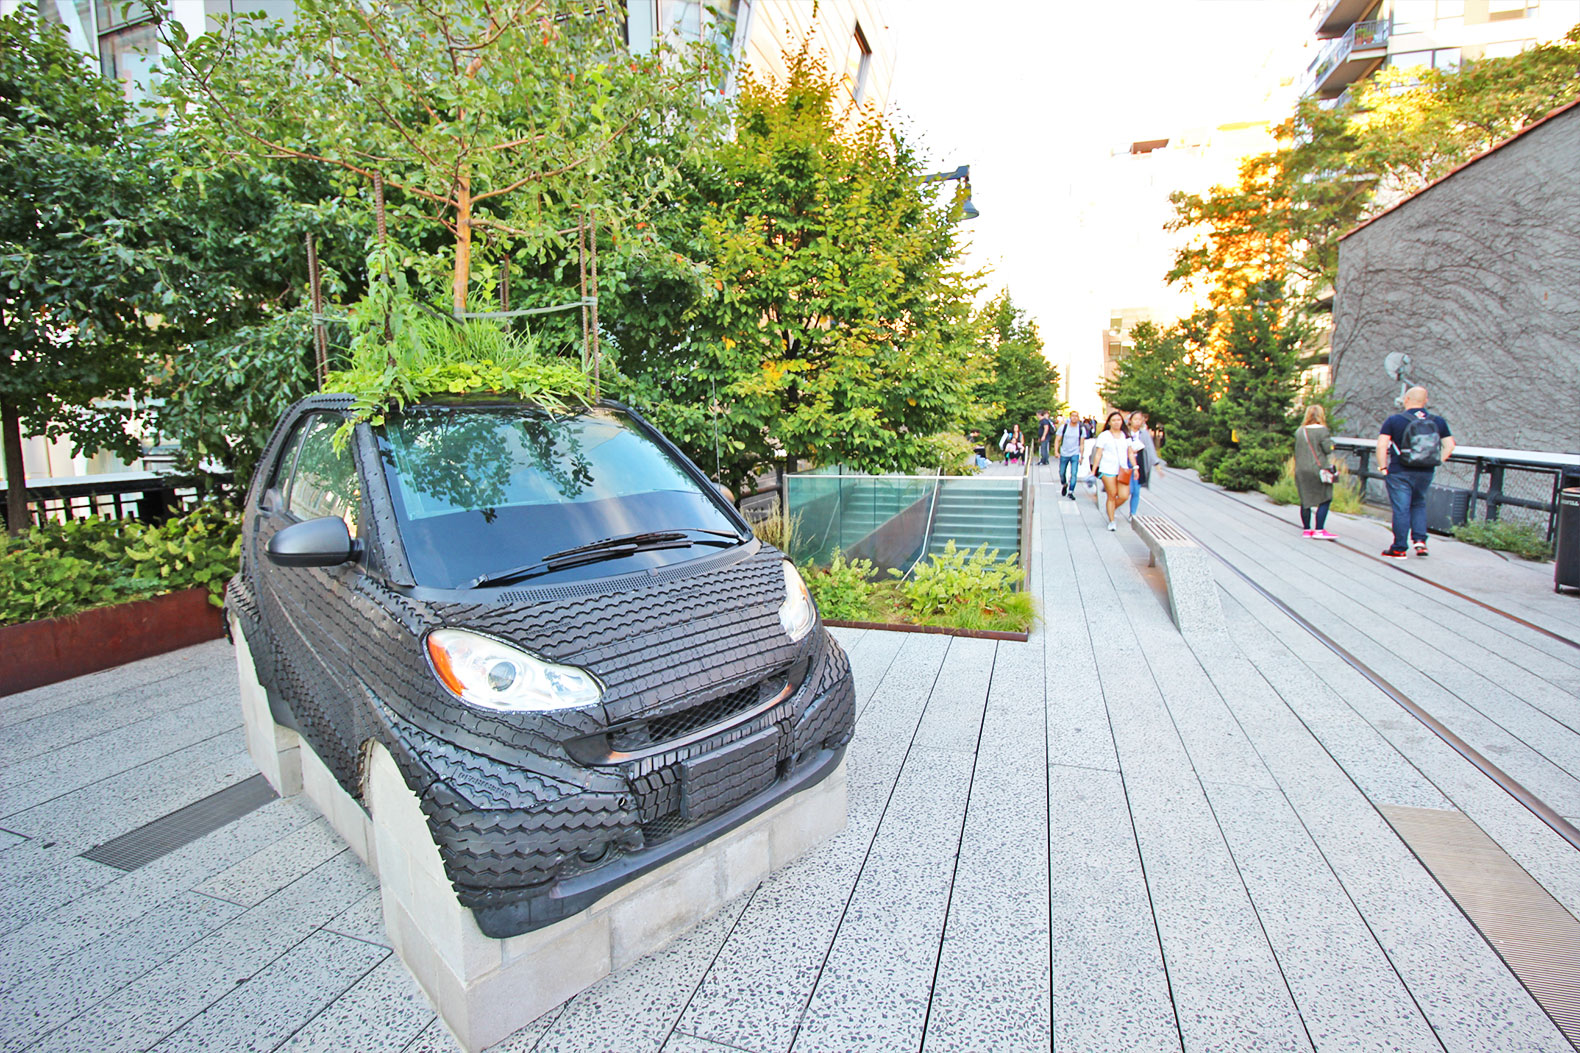 What's the deal with this apple tree growing out of a car on the High Line?